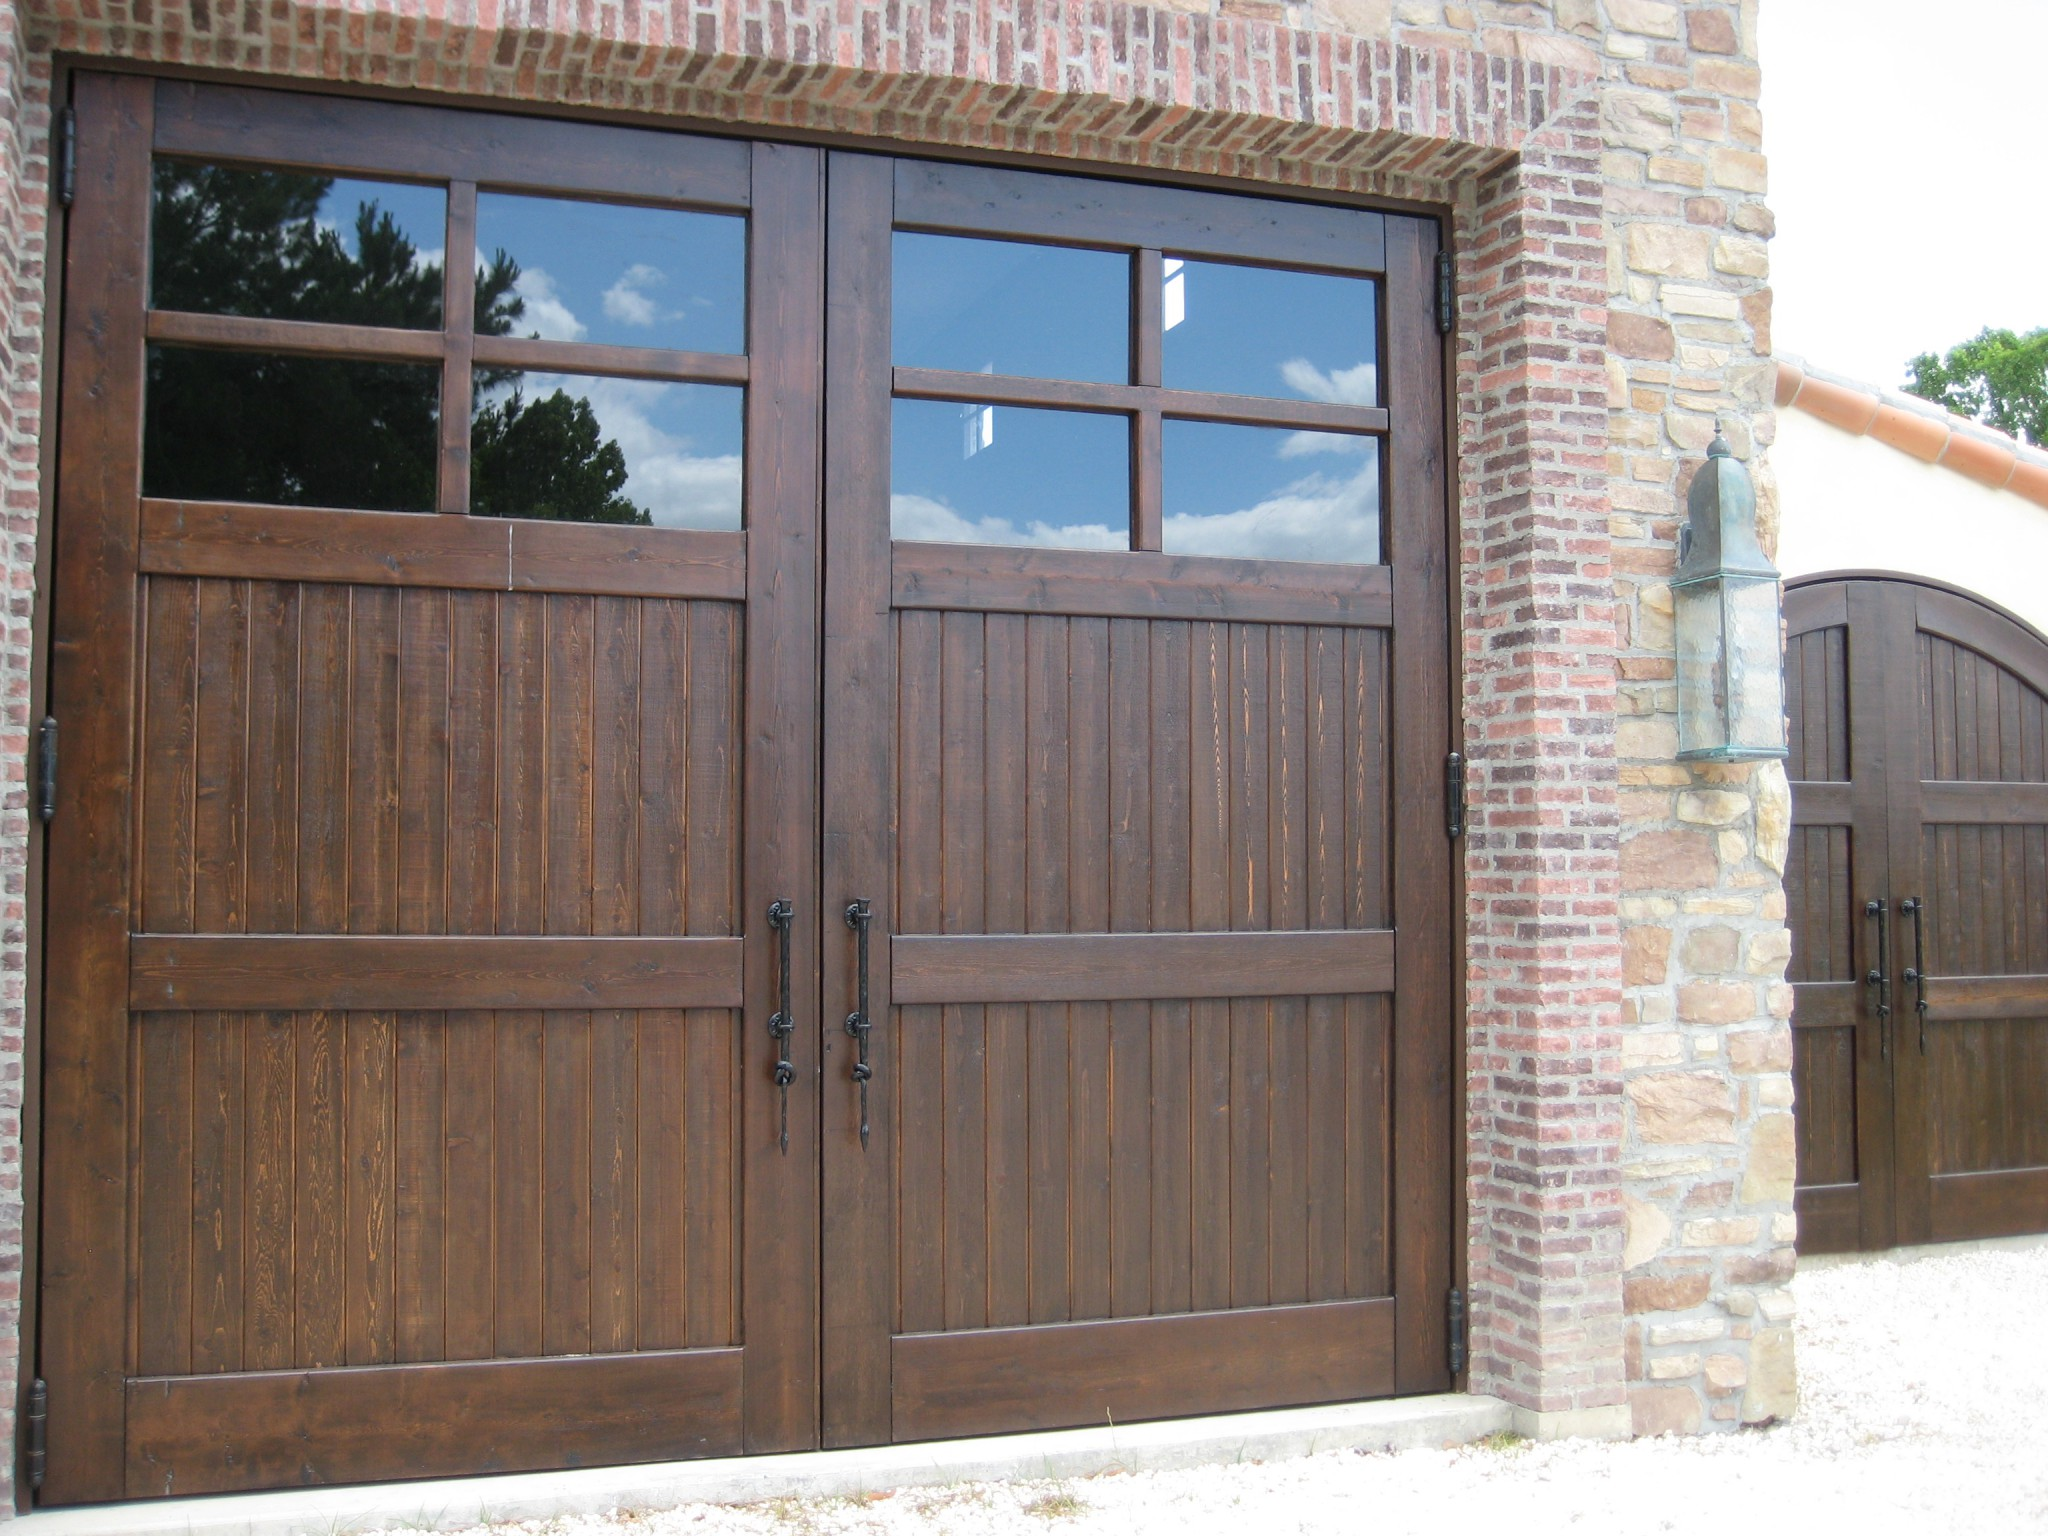 Stall end wall doors double r manufacturing stallbarndoorendwallwoodhinged2 stallbarndoorendwallwoodhinged3 stallbarndoorendwallwoodhinged3 stallbarndoorendwallwoodsliding7 rubansaba